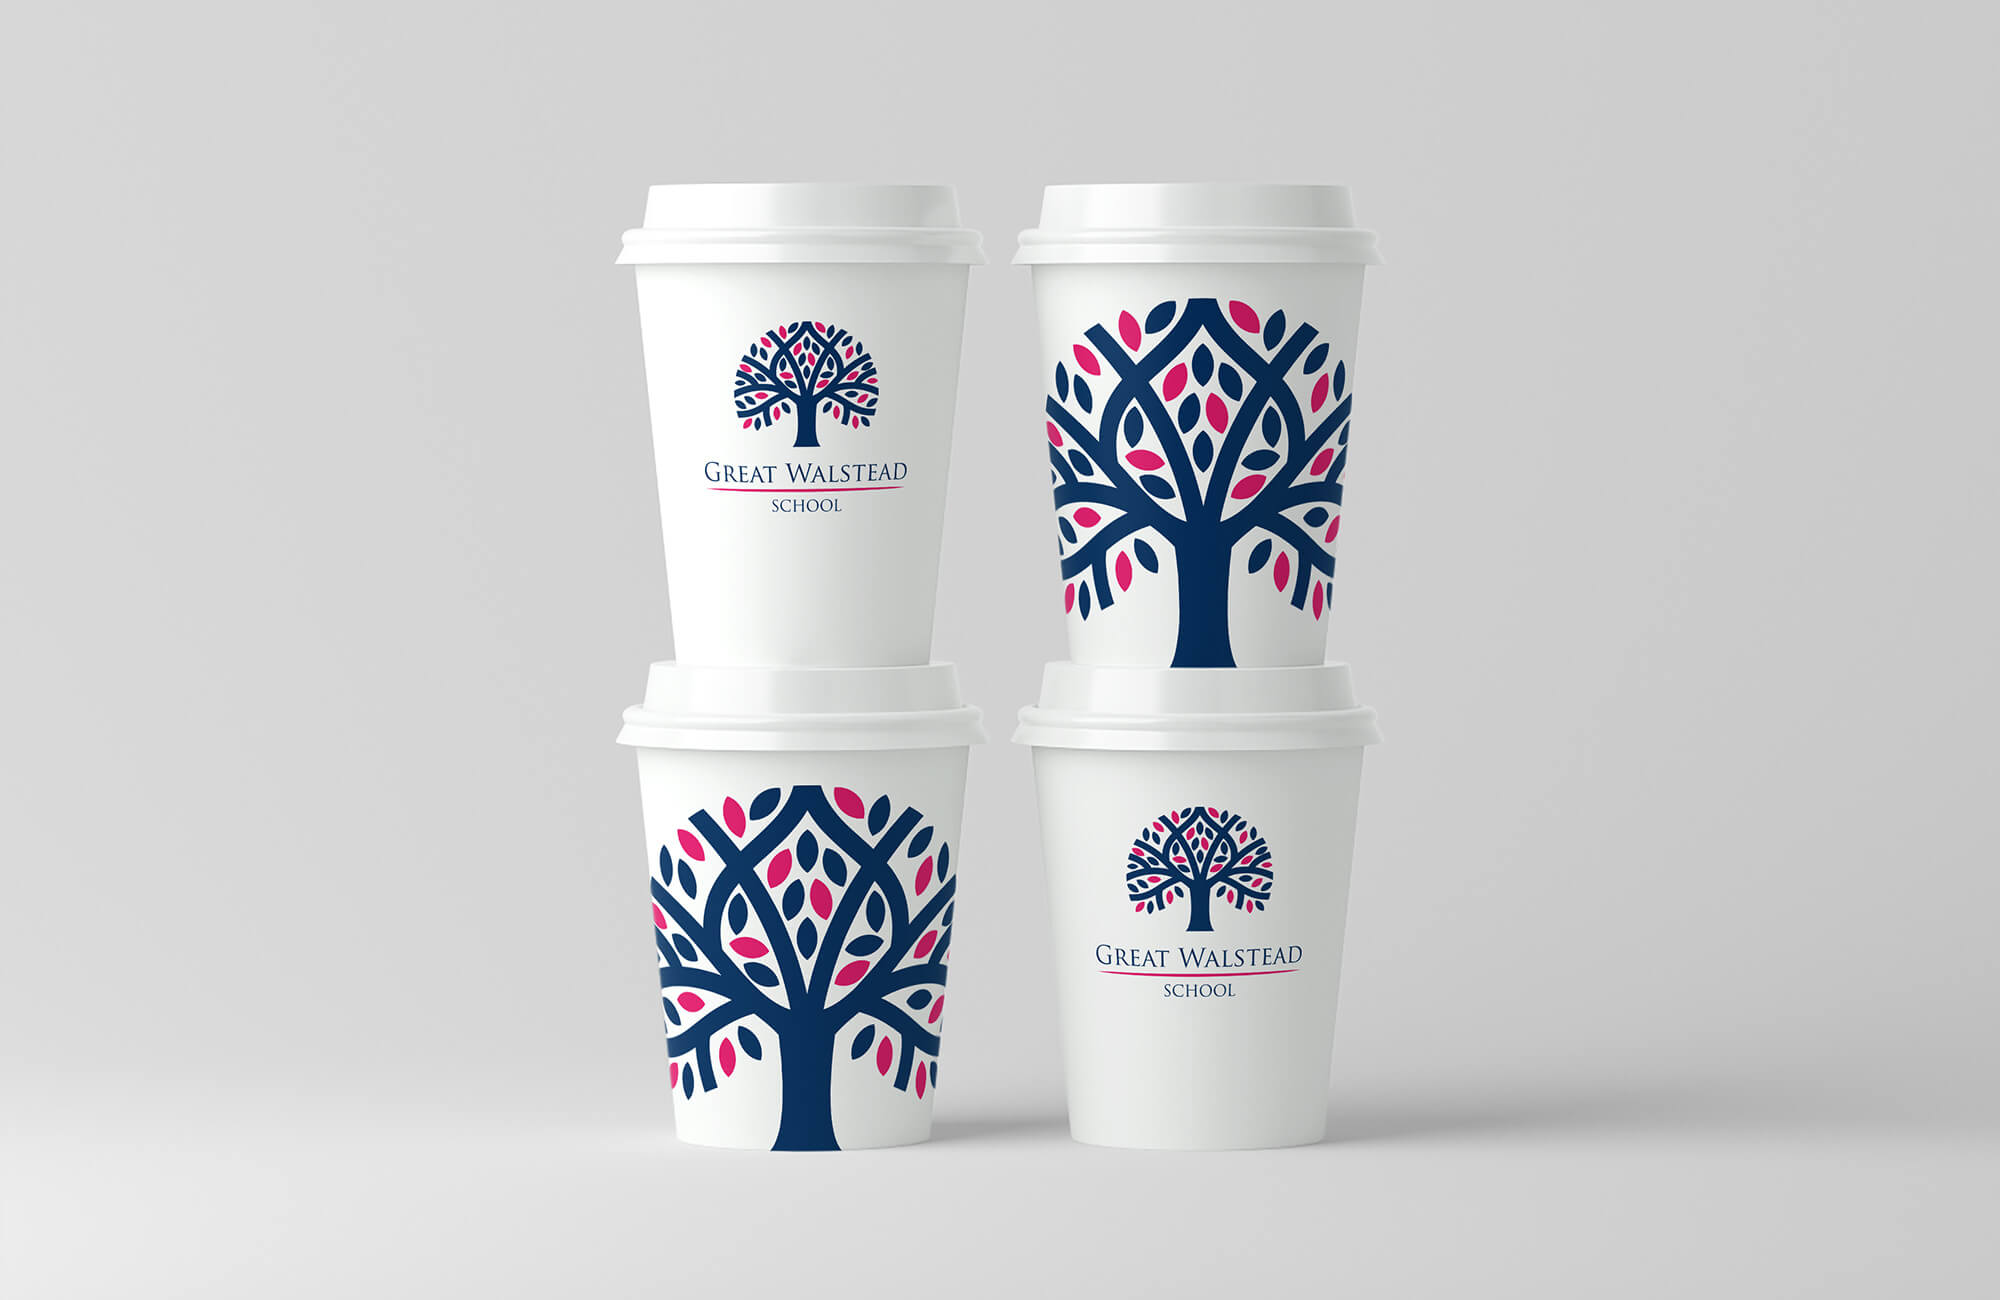 Great Walstead School Branded Coffee Cup Design Concept